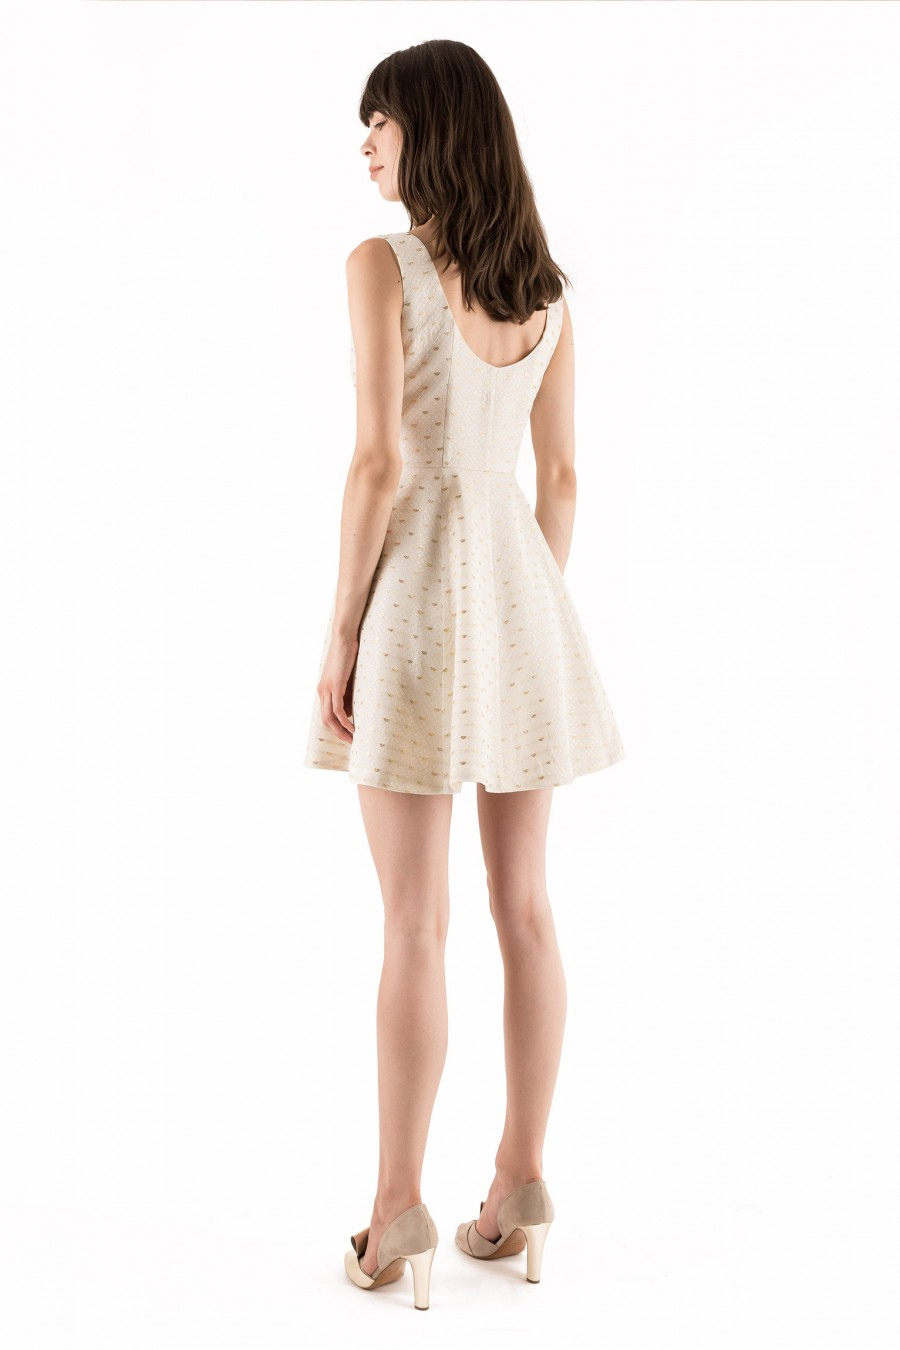 Gold and white summer dress